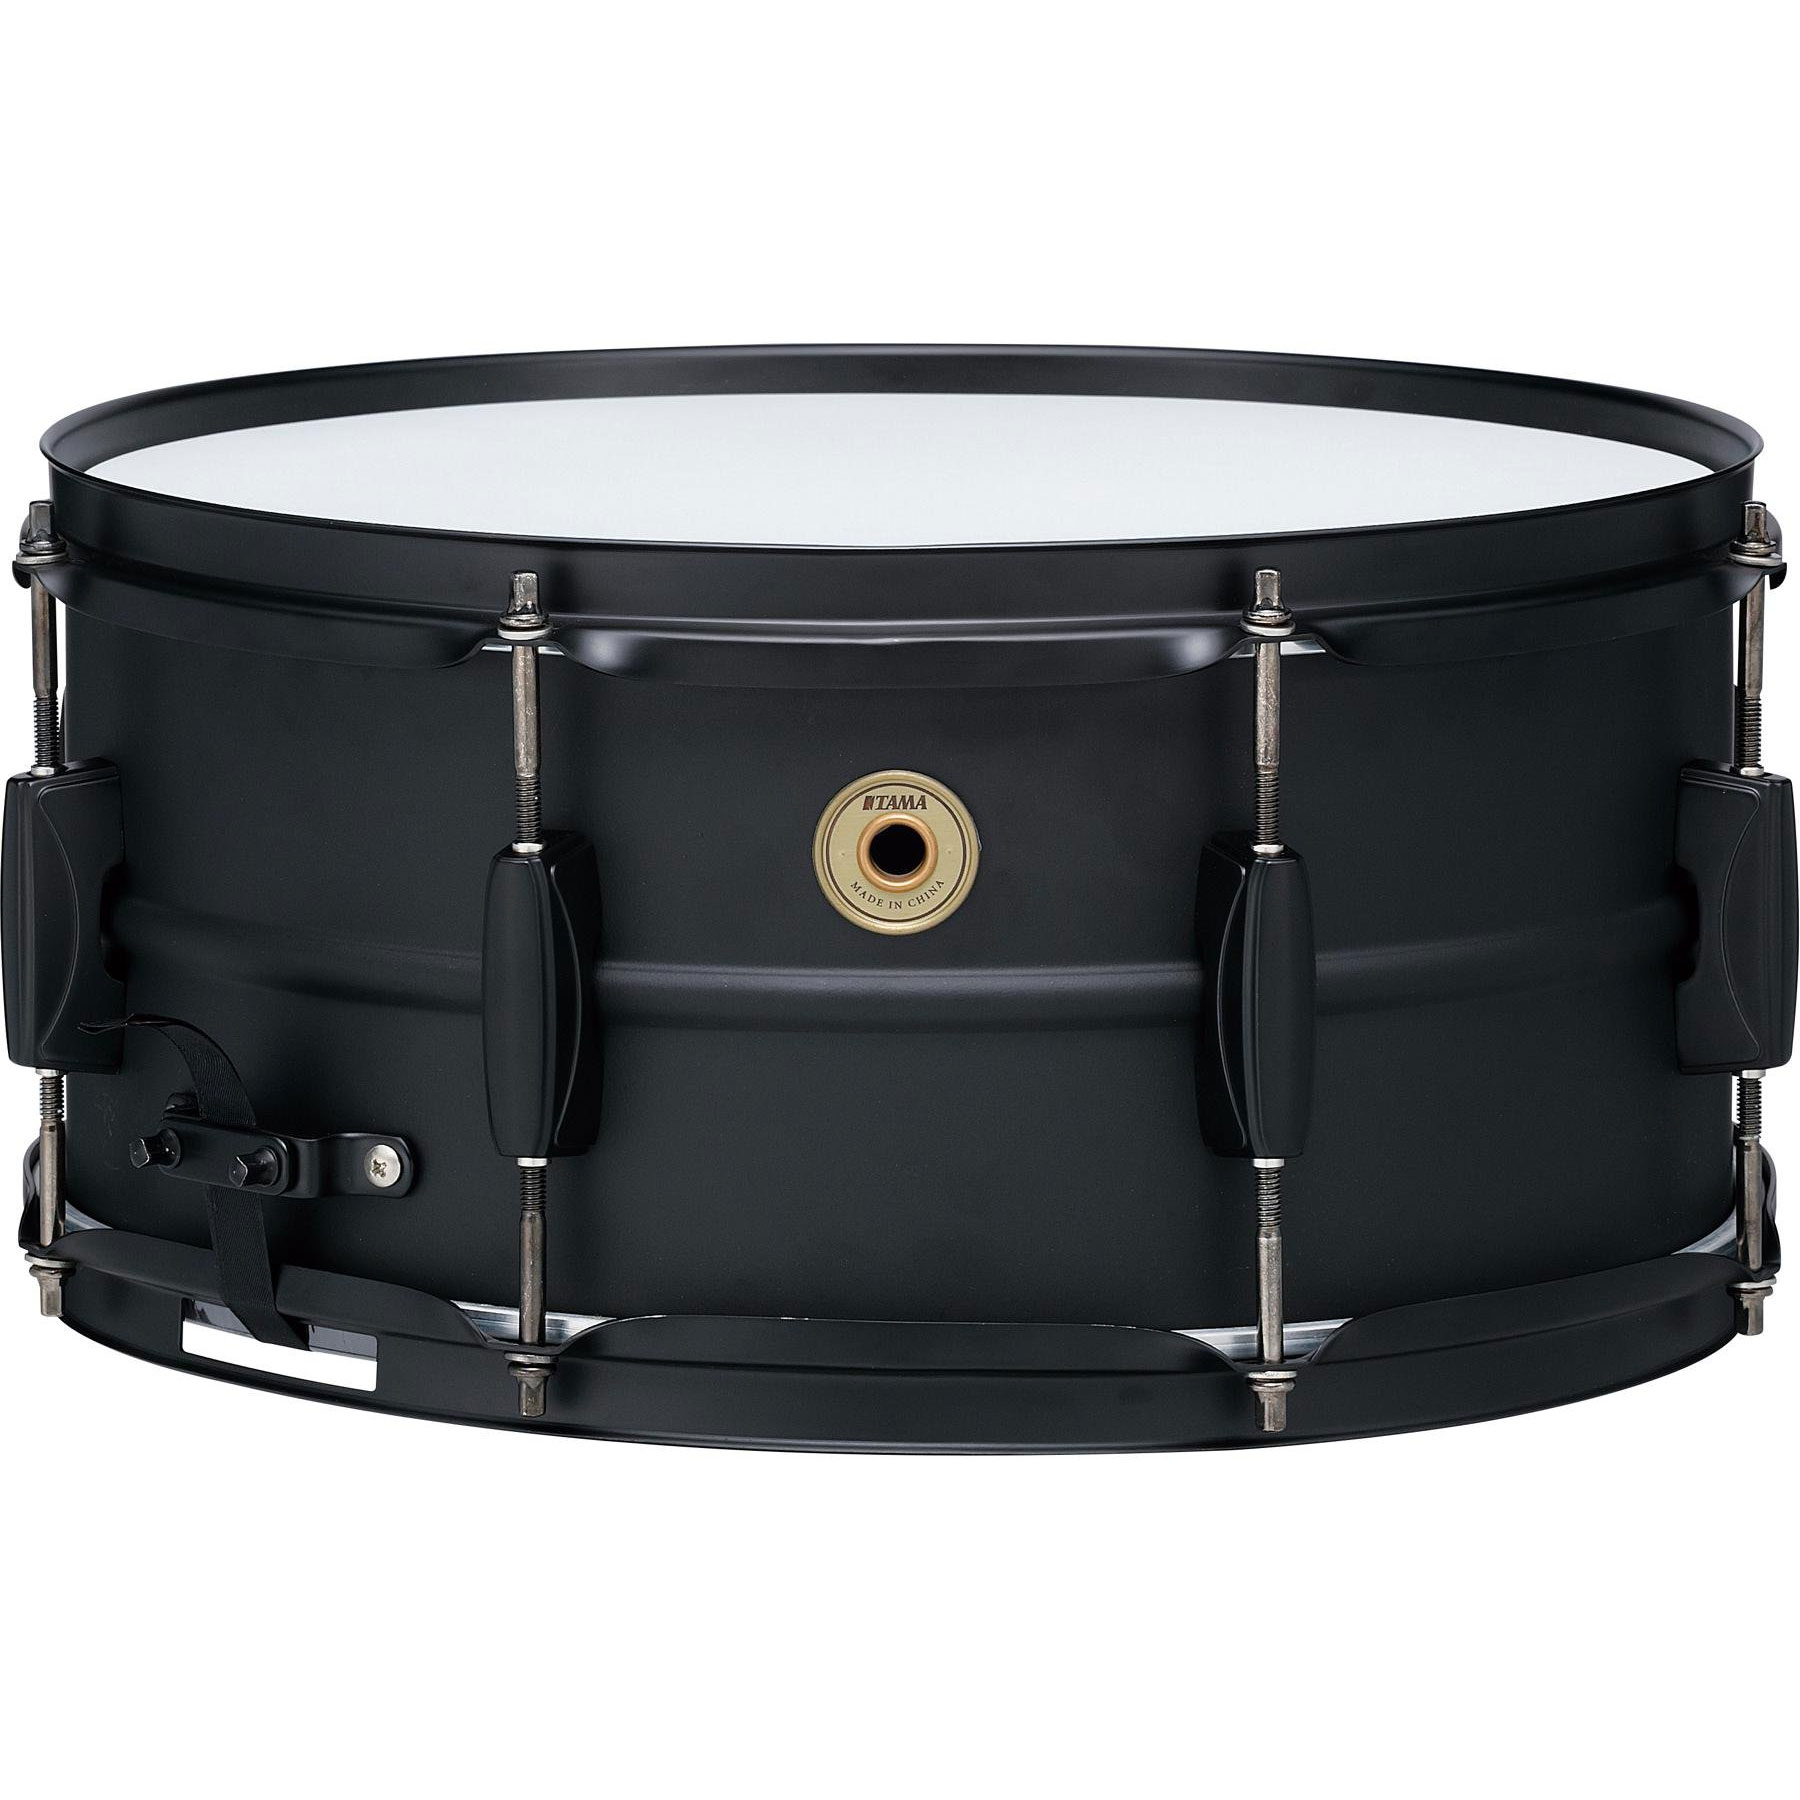 "Tama 6.5"" x 14"" Metalworks Steel Snare Drum in Matte Black with Matching Hardware"